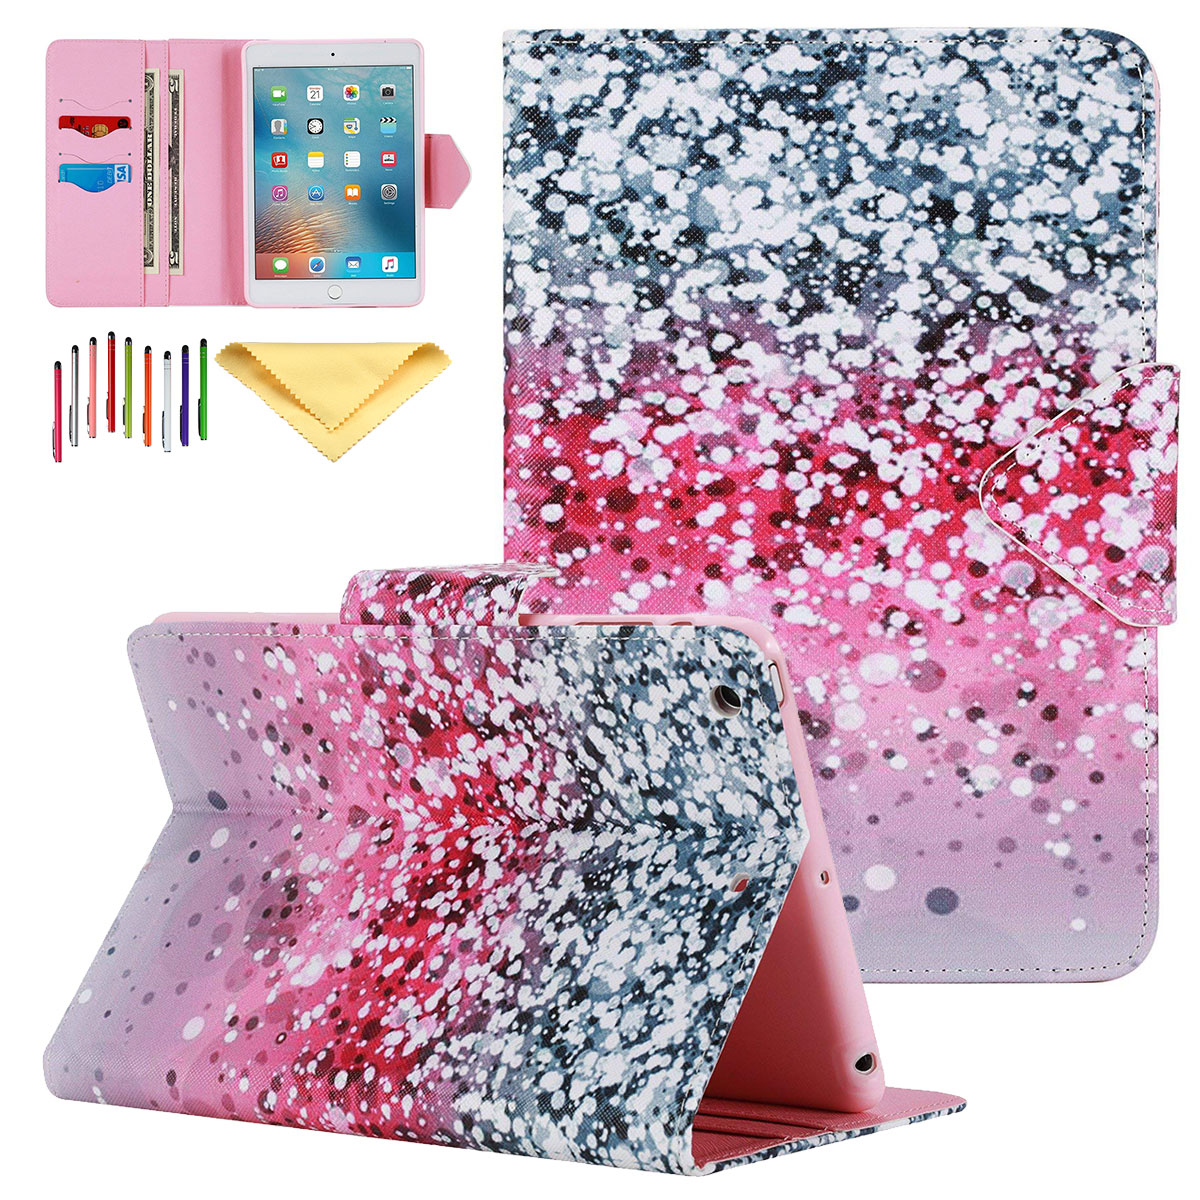 iPad Mini 7.9 Inch Case, iPad Mini 2 3 Cover, Goodest Folio Slim Fit Stand Bumper Smart Cover Auto Sleep Wake Shock Absorption Protector Cards Pocket for Apple iPad mini 1st/2nd/3rd Gen, Glitter Sand